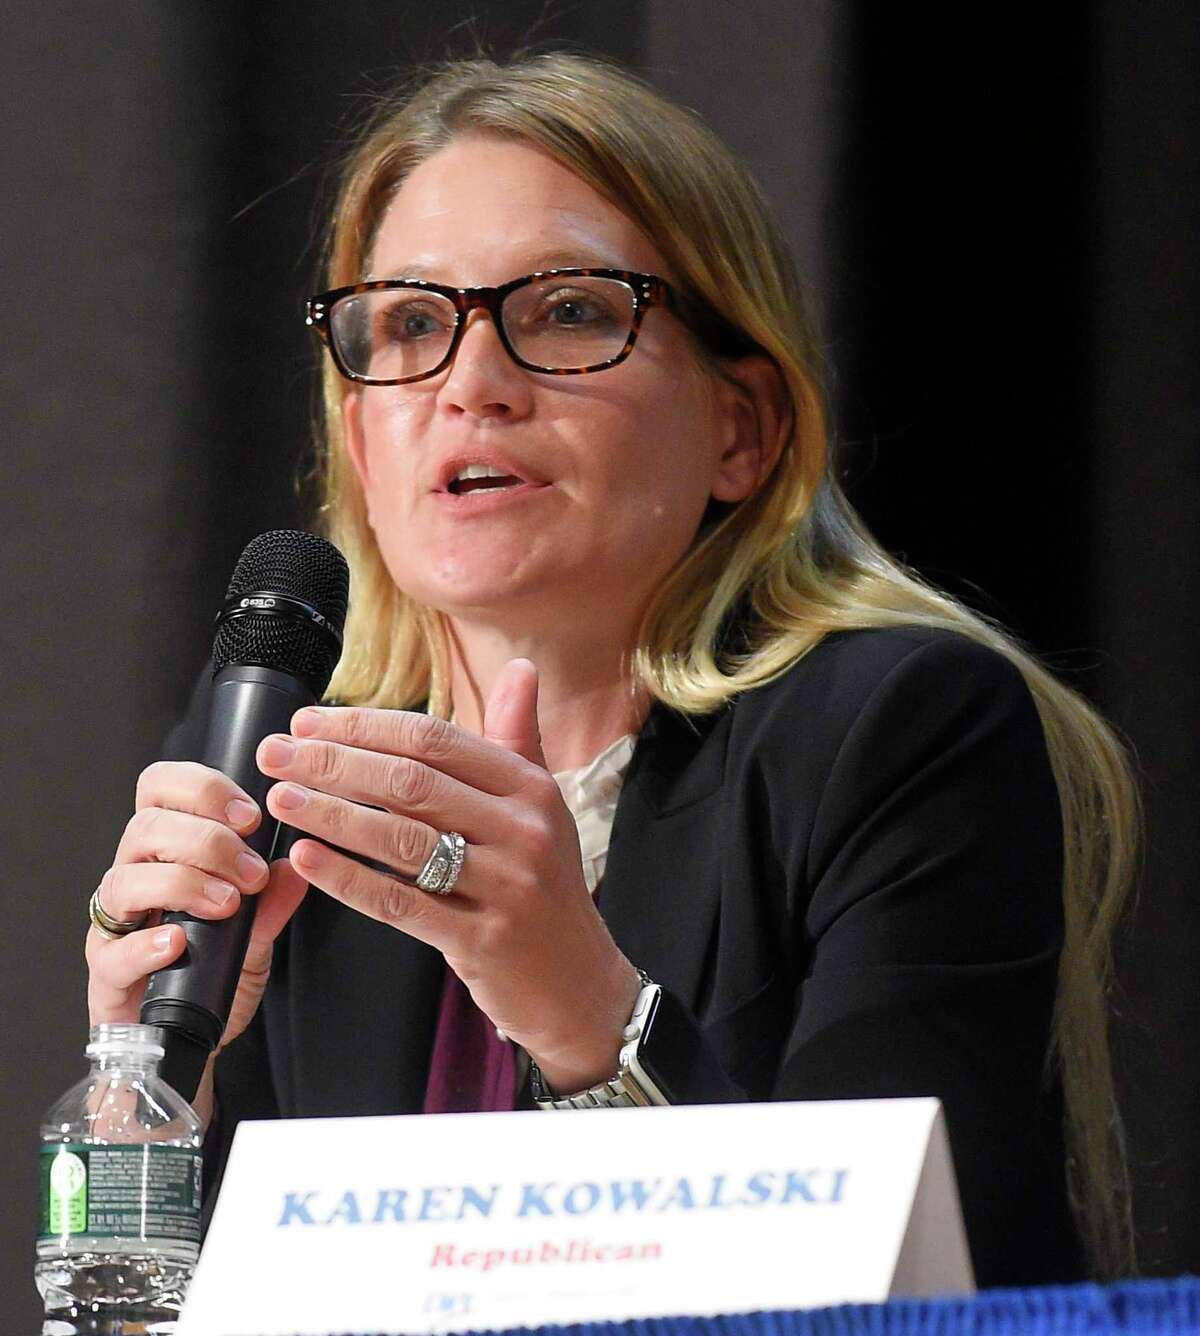 Greenwich school board member Karen Kowalski. In this file photo, she addresses a question during the Greenwich League of Women Voters Board of Education forum at Central Middle School on Oct. 15, 2019 in Greenwich, Connecticut.